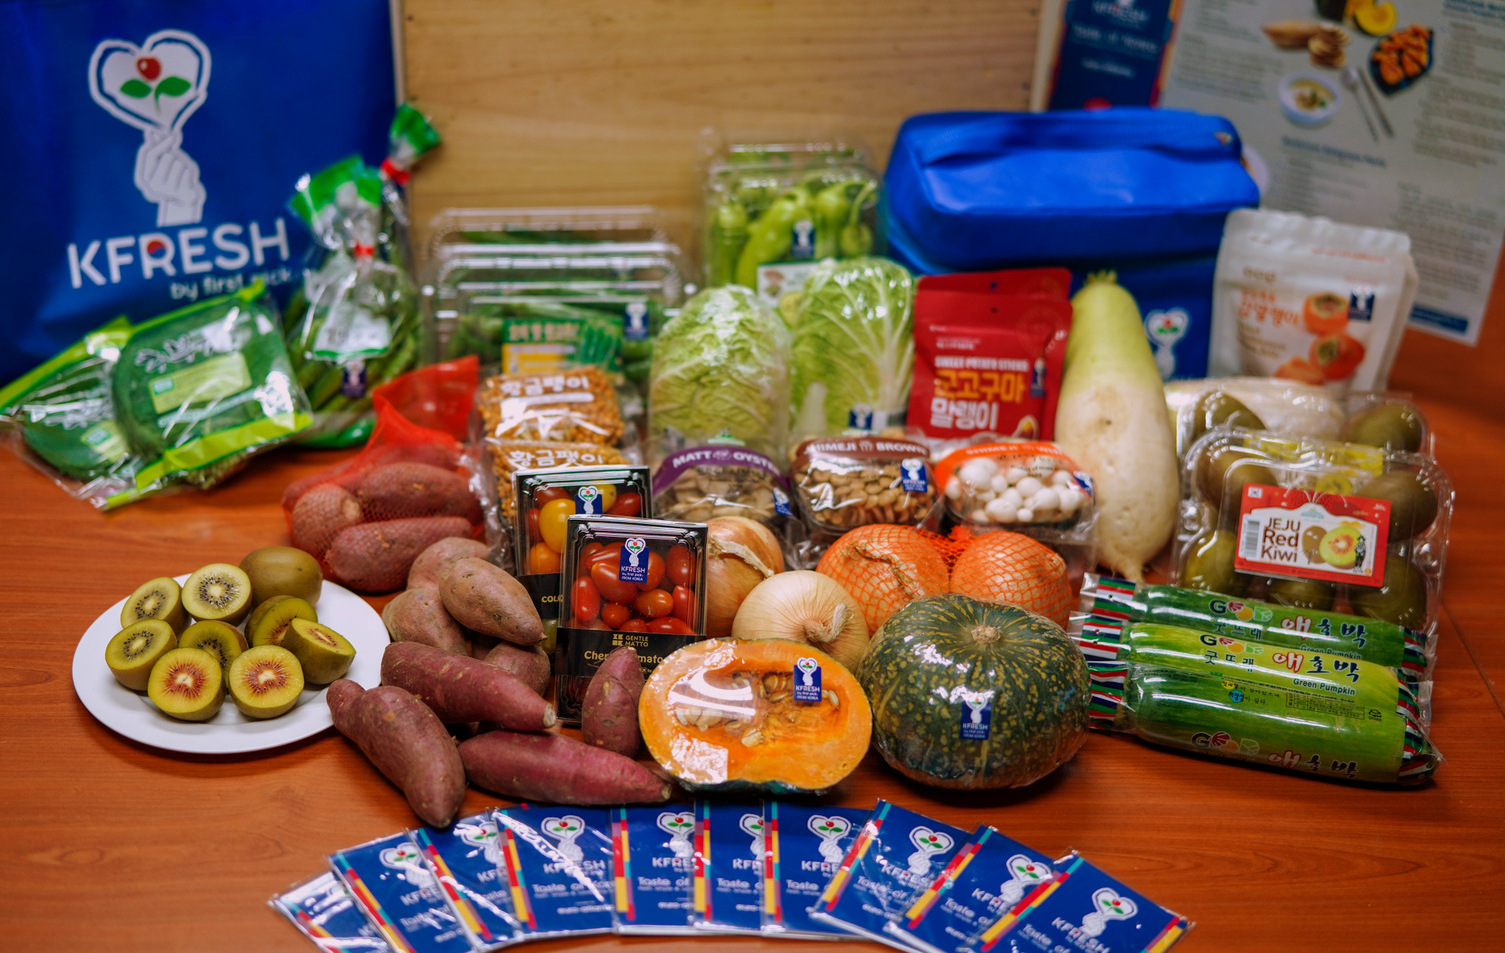 K Fresh by First Pick: Premium Korean Vegetables & Fruits in Malaysia